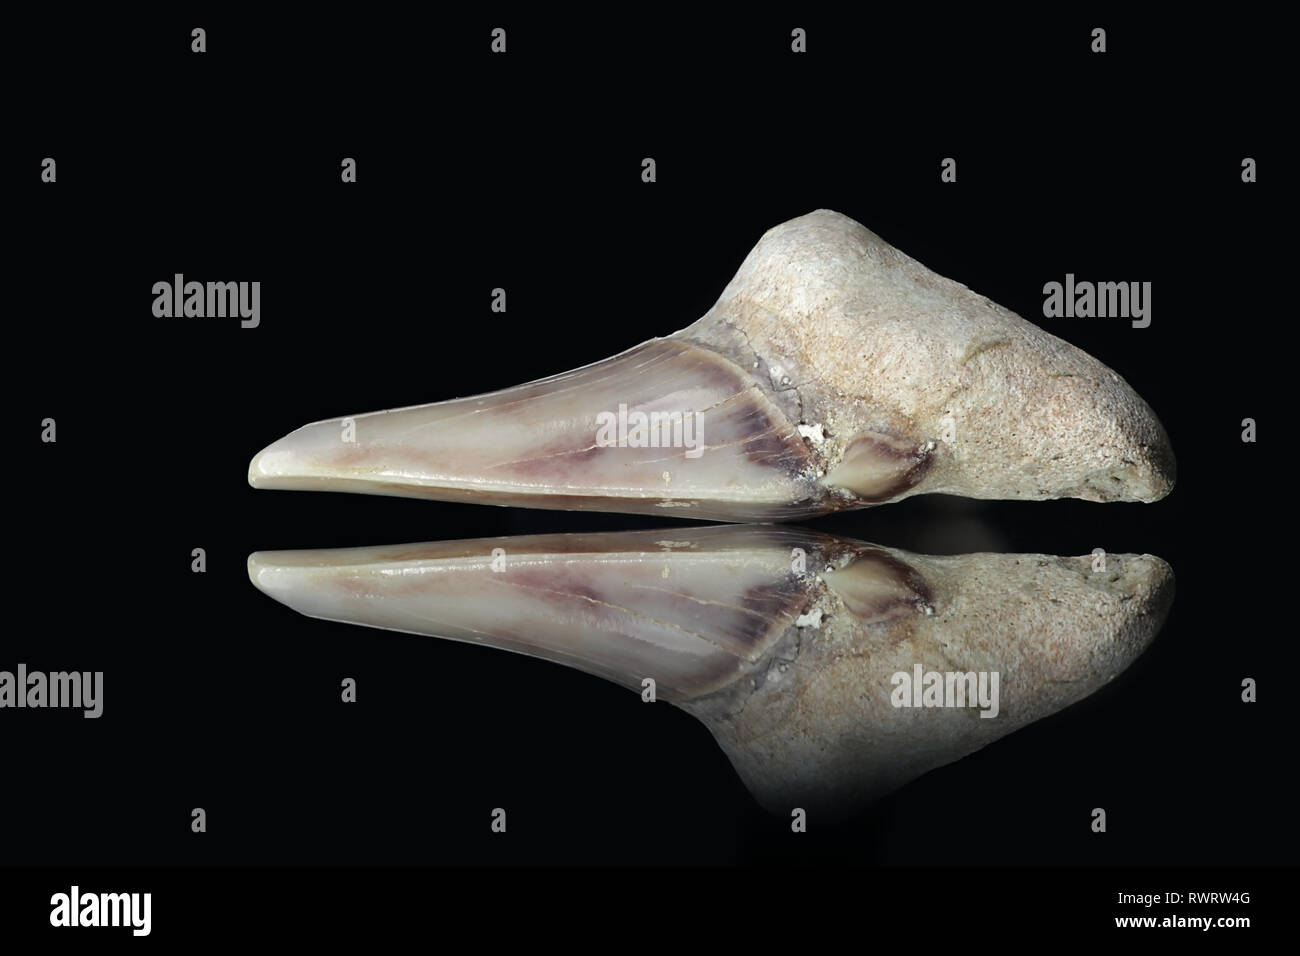 Fossilized shark tooth from Morocco - Stock Image